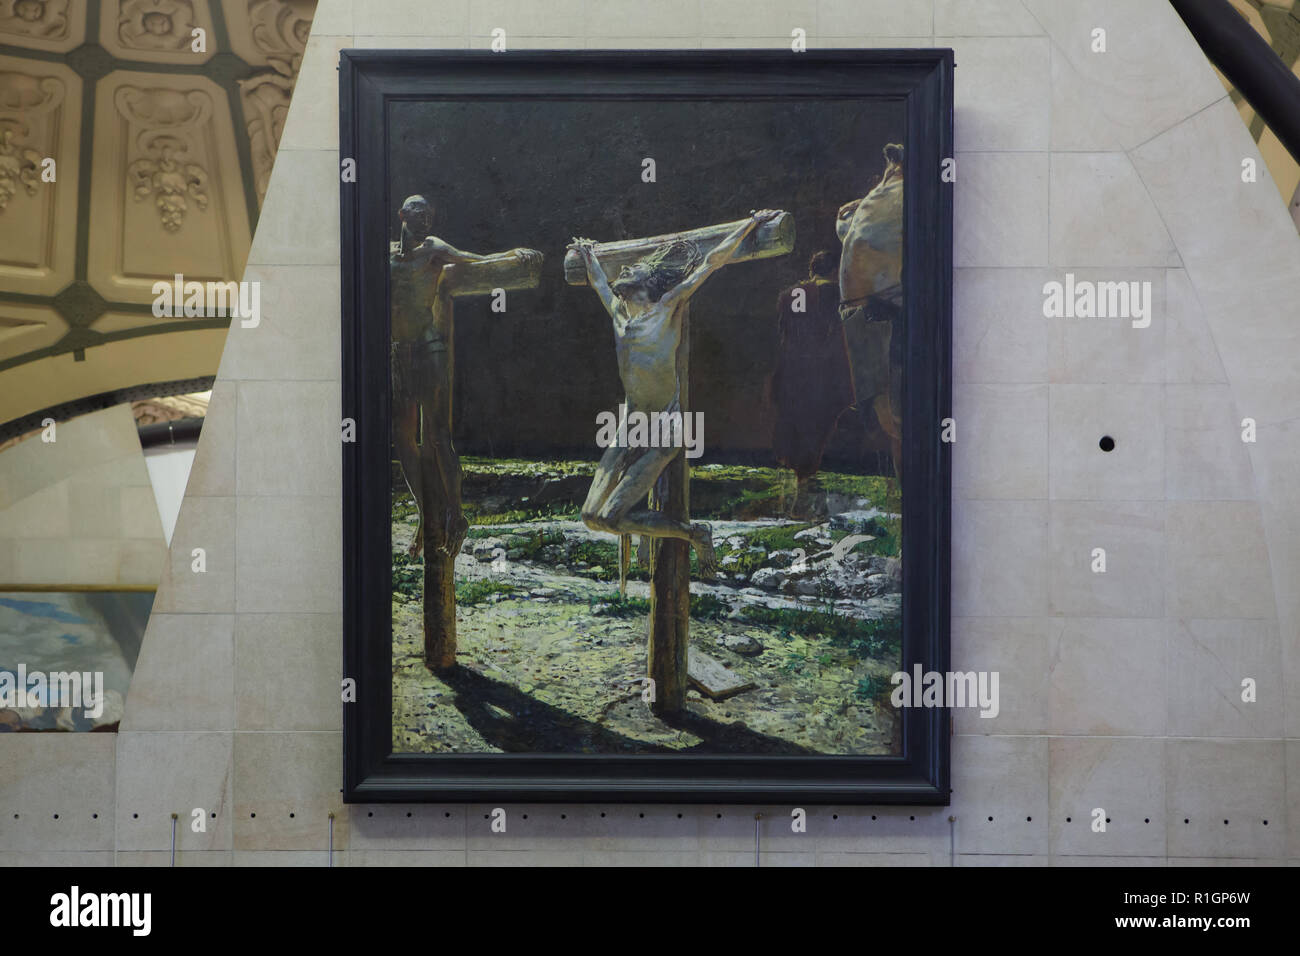 Painting 'Golgotha' by Russian realist painter Nikolai Ge (1892) on display in the Musée d'Orsay in Paris, France. - Stock Image